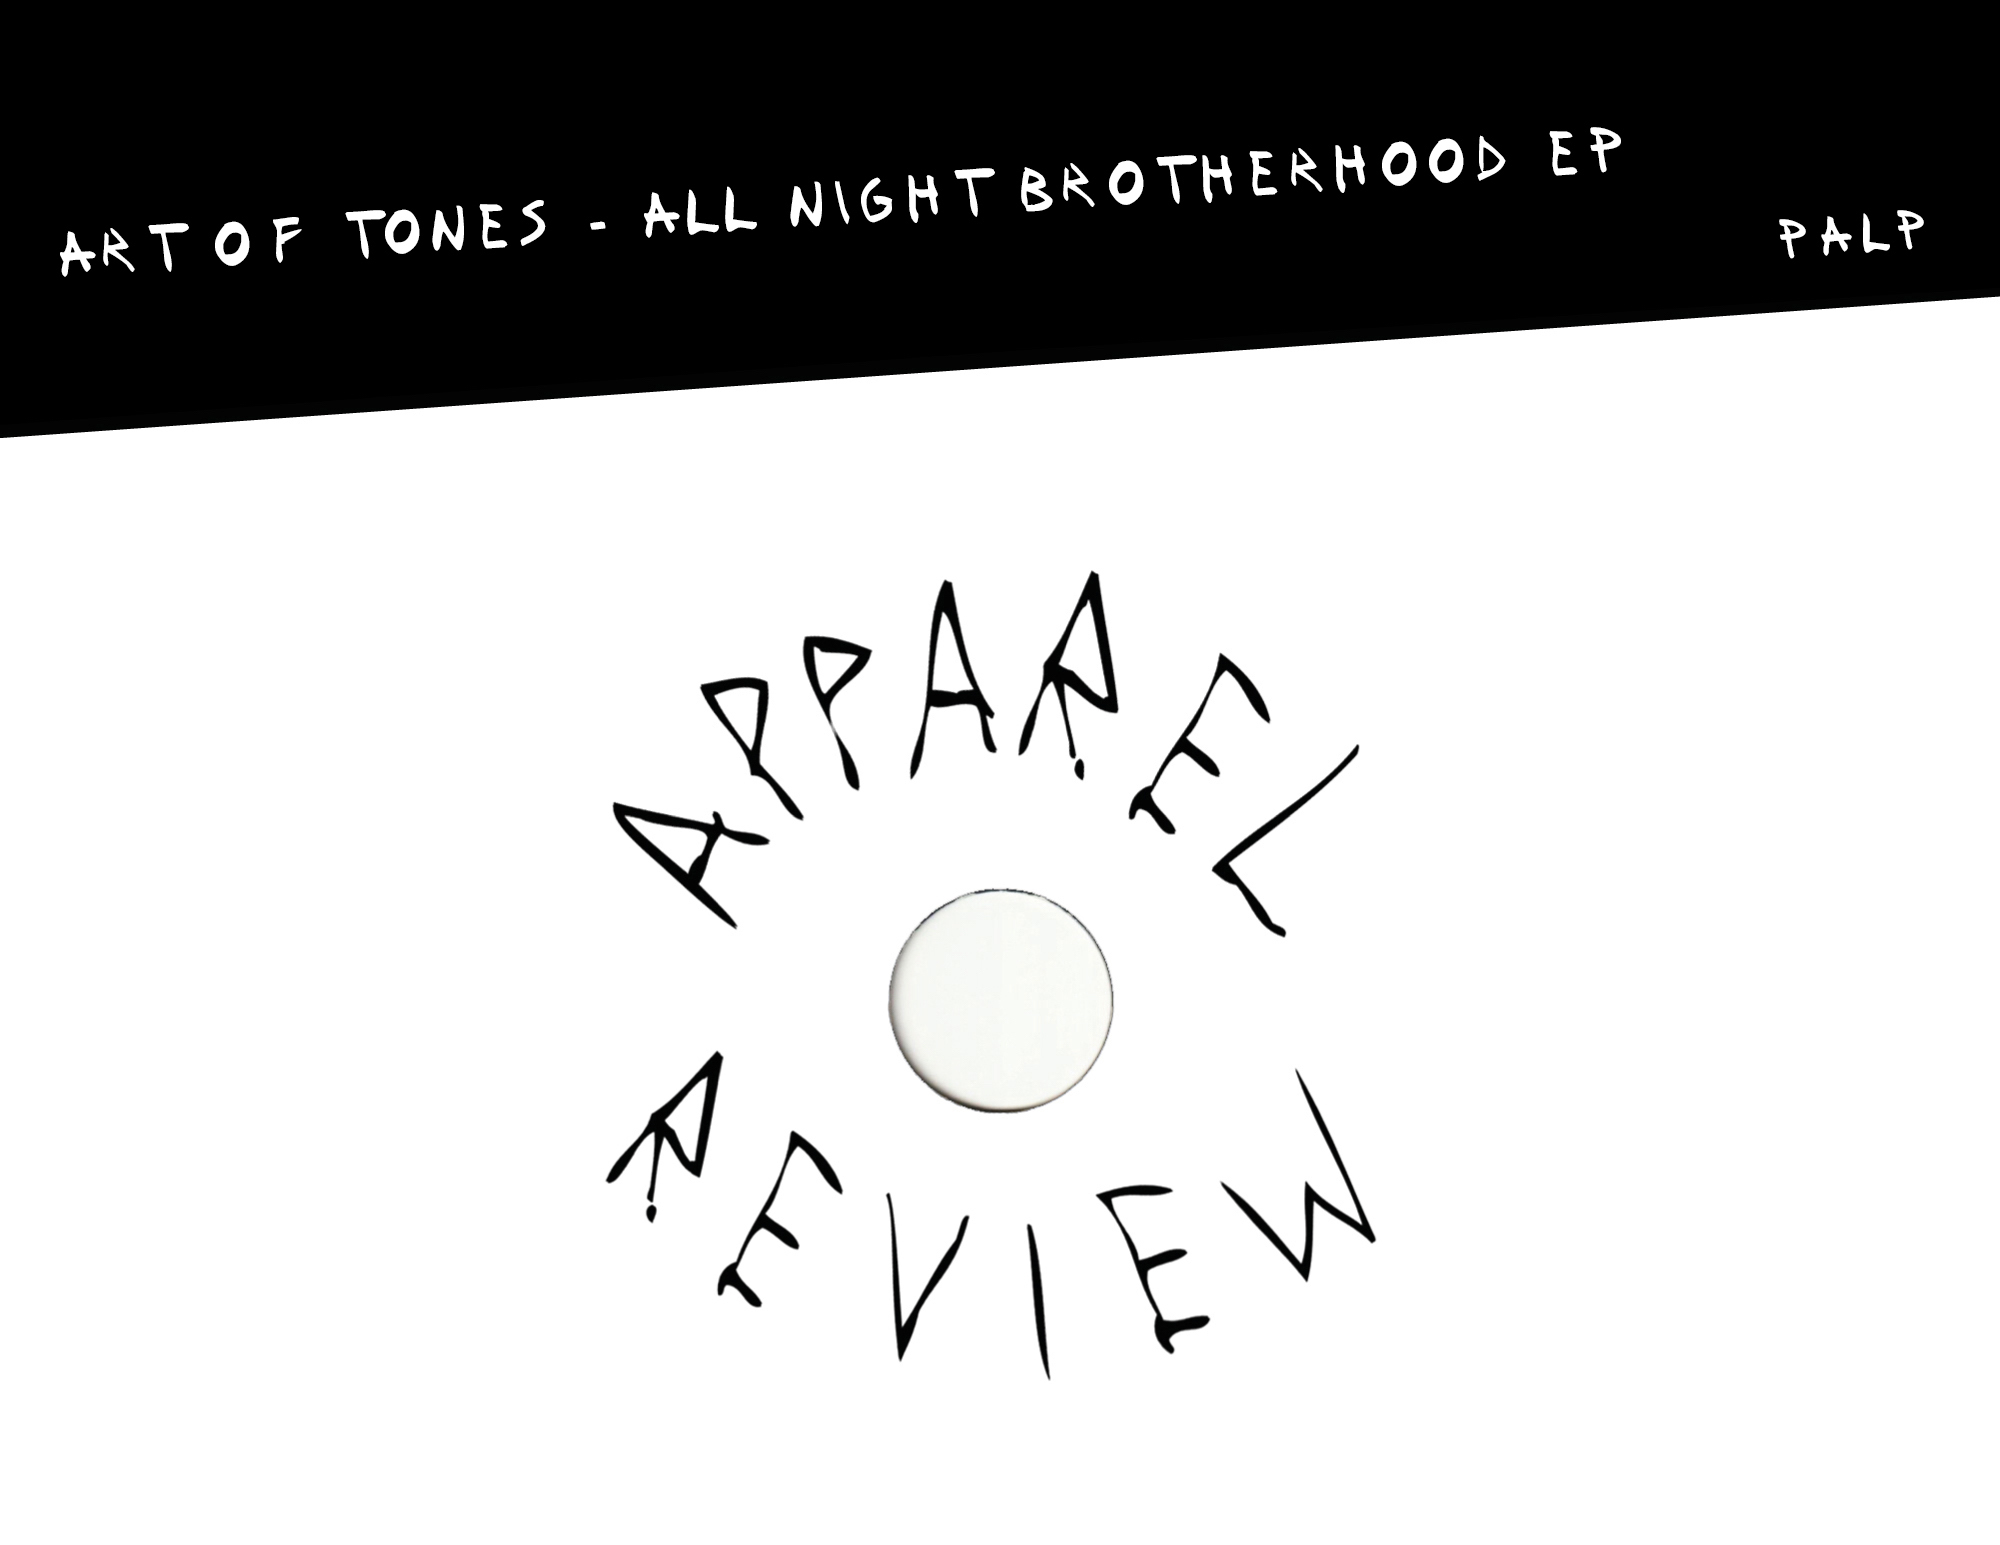 Apparel-Review Palp